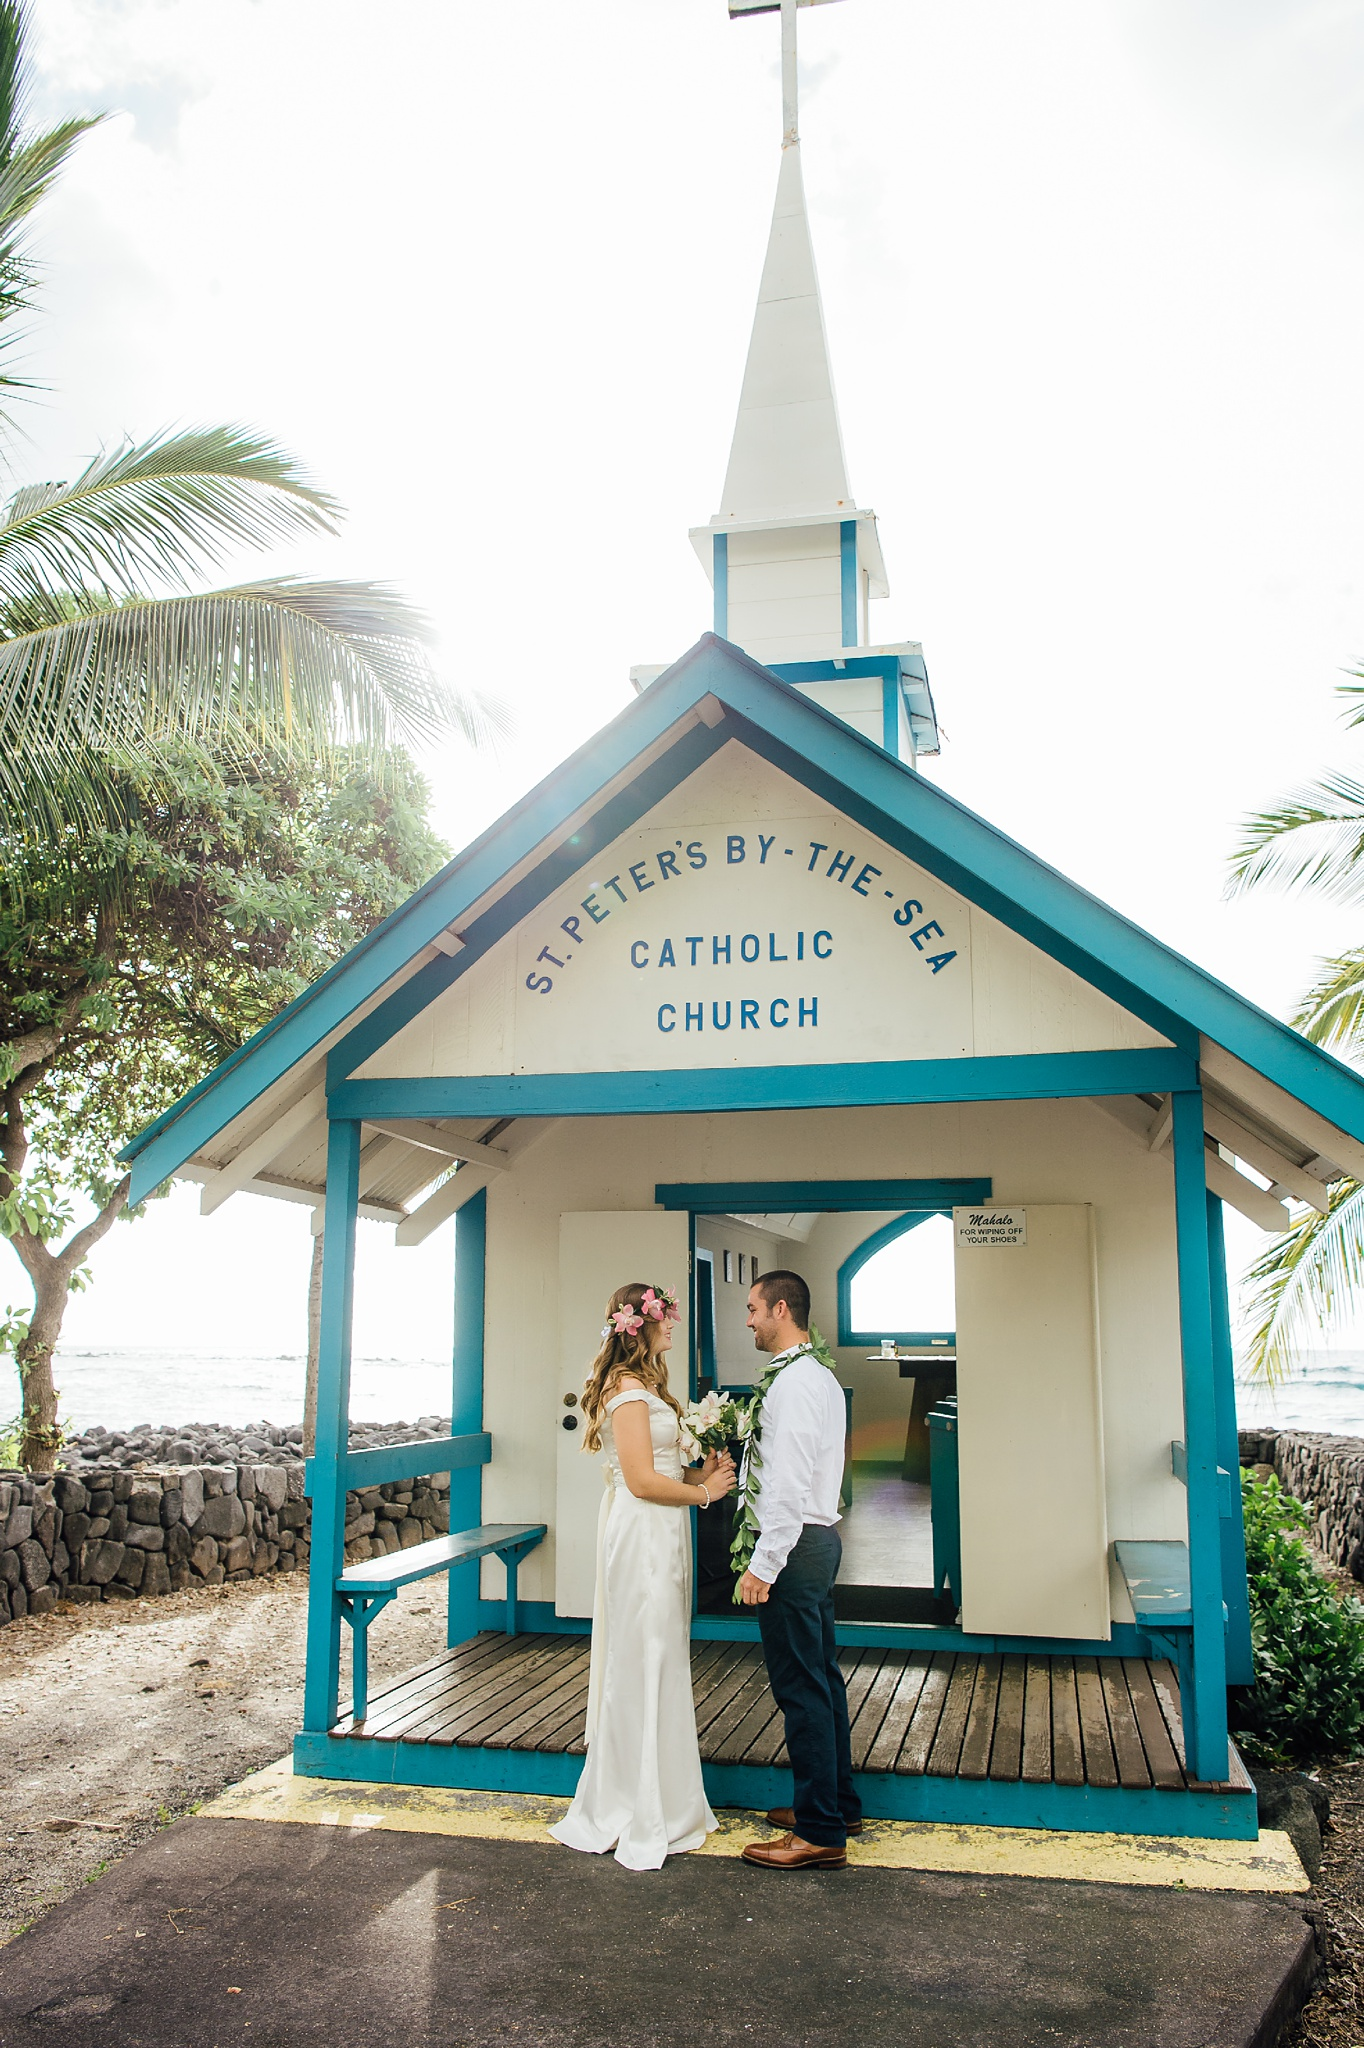 St Peters by the Sea Church in Kona for Weddings and Elopements